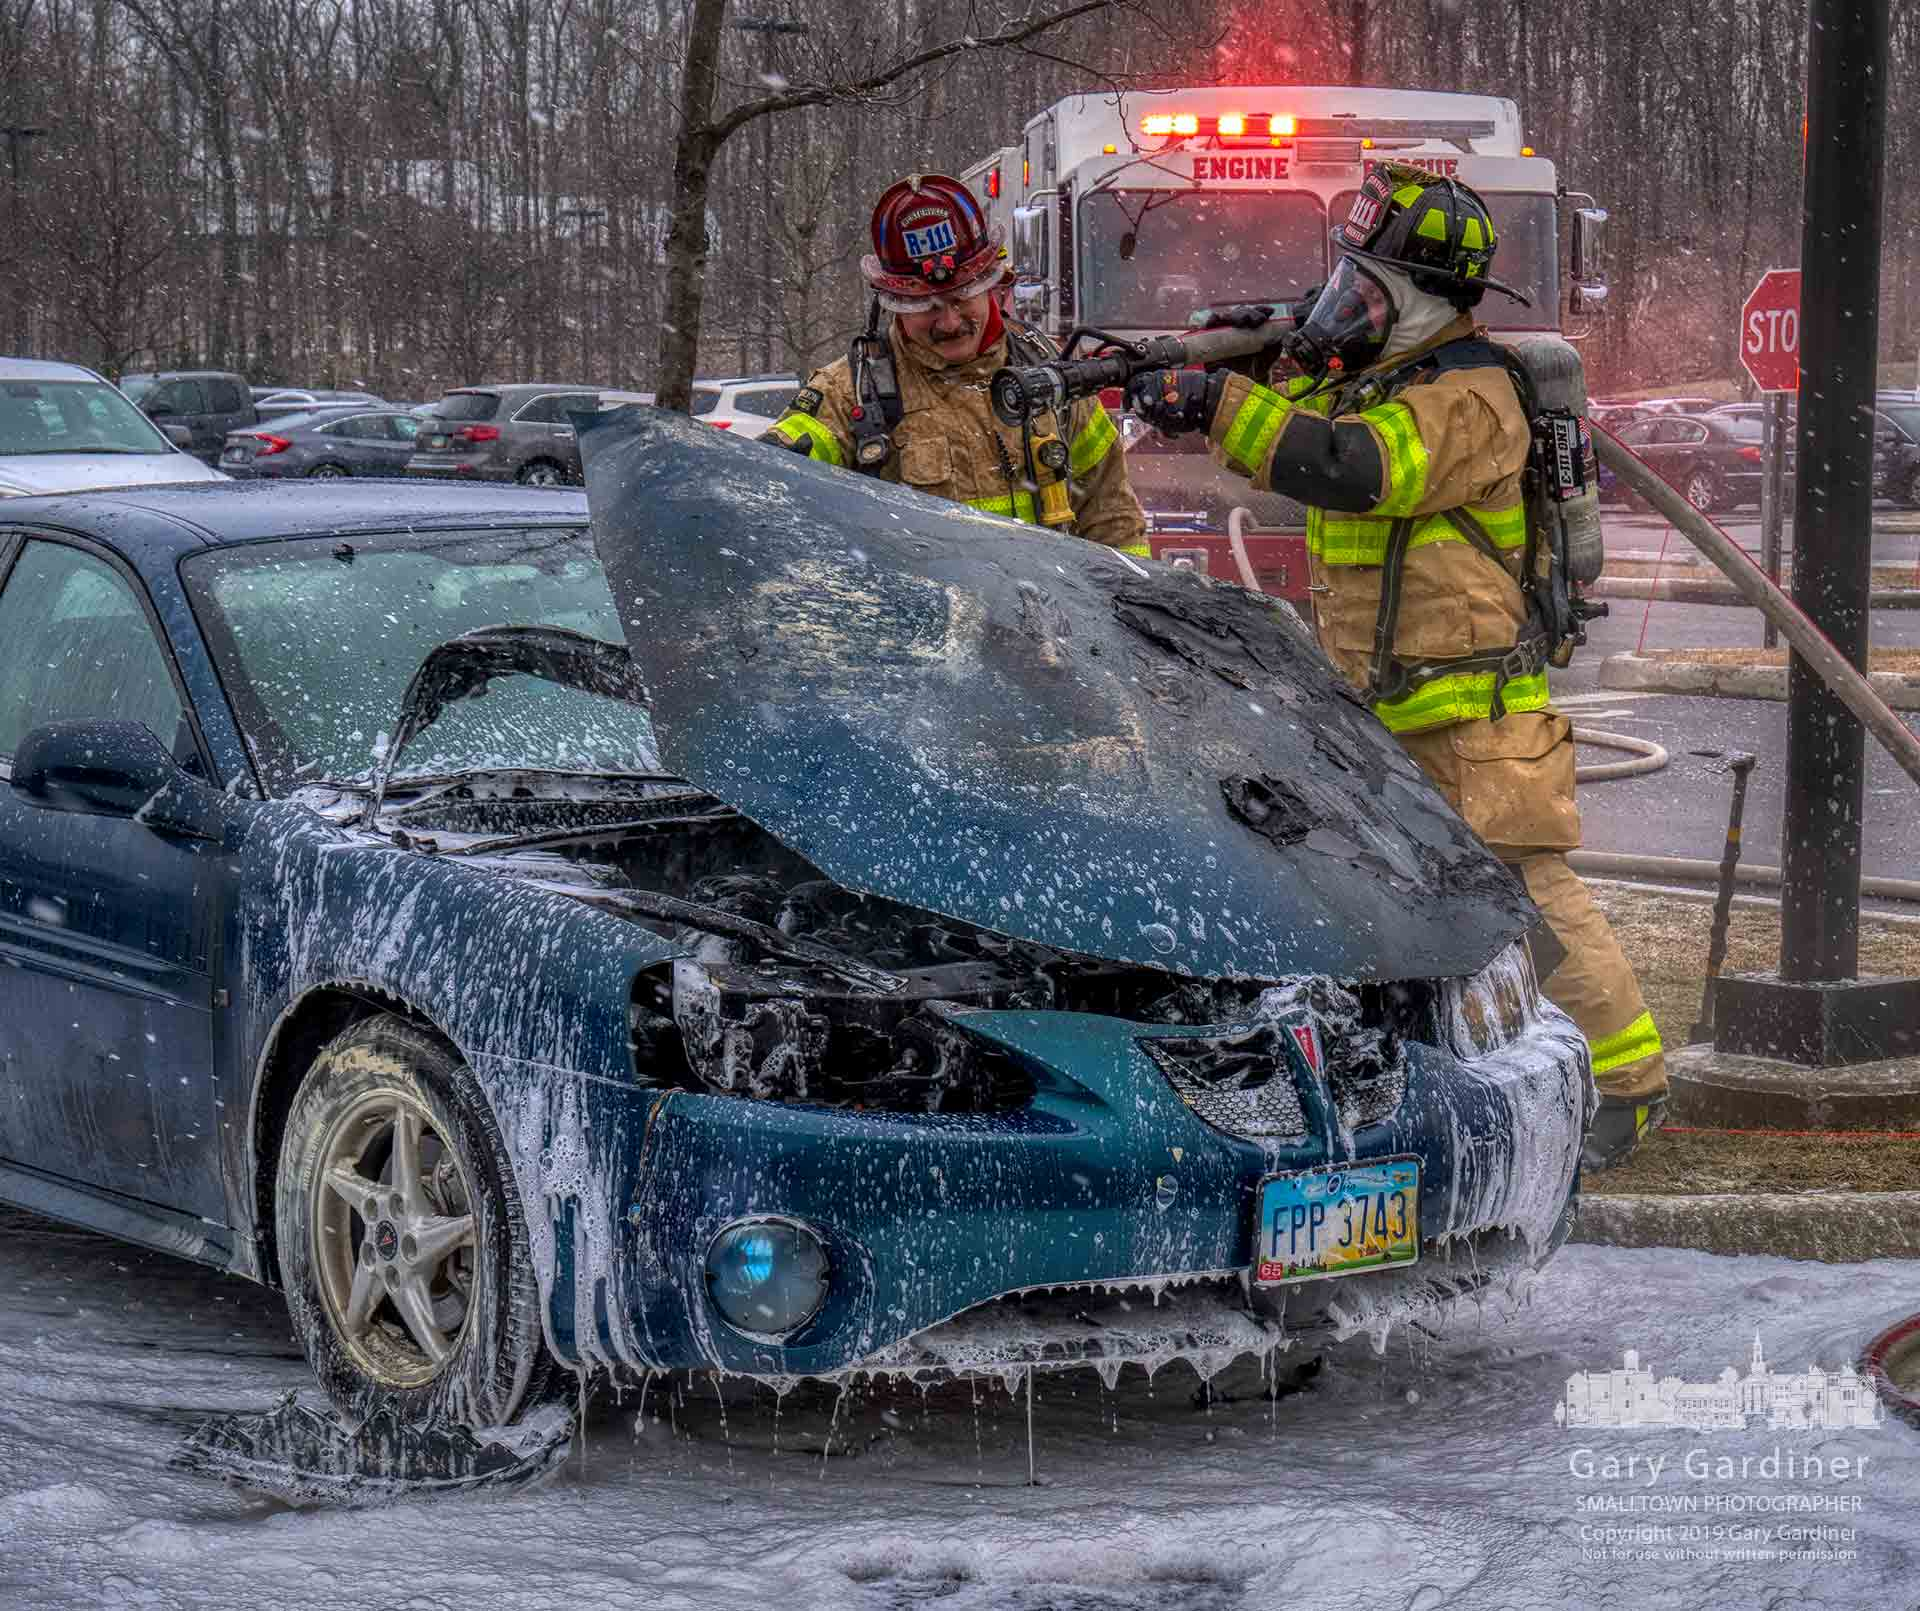 Westerville firefighters spray water on hot spots on the engine of a car that burned in the parking lot of Ohio Health on Polaris Parkway. My Final Photo for Feb. 18, 2019.